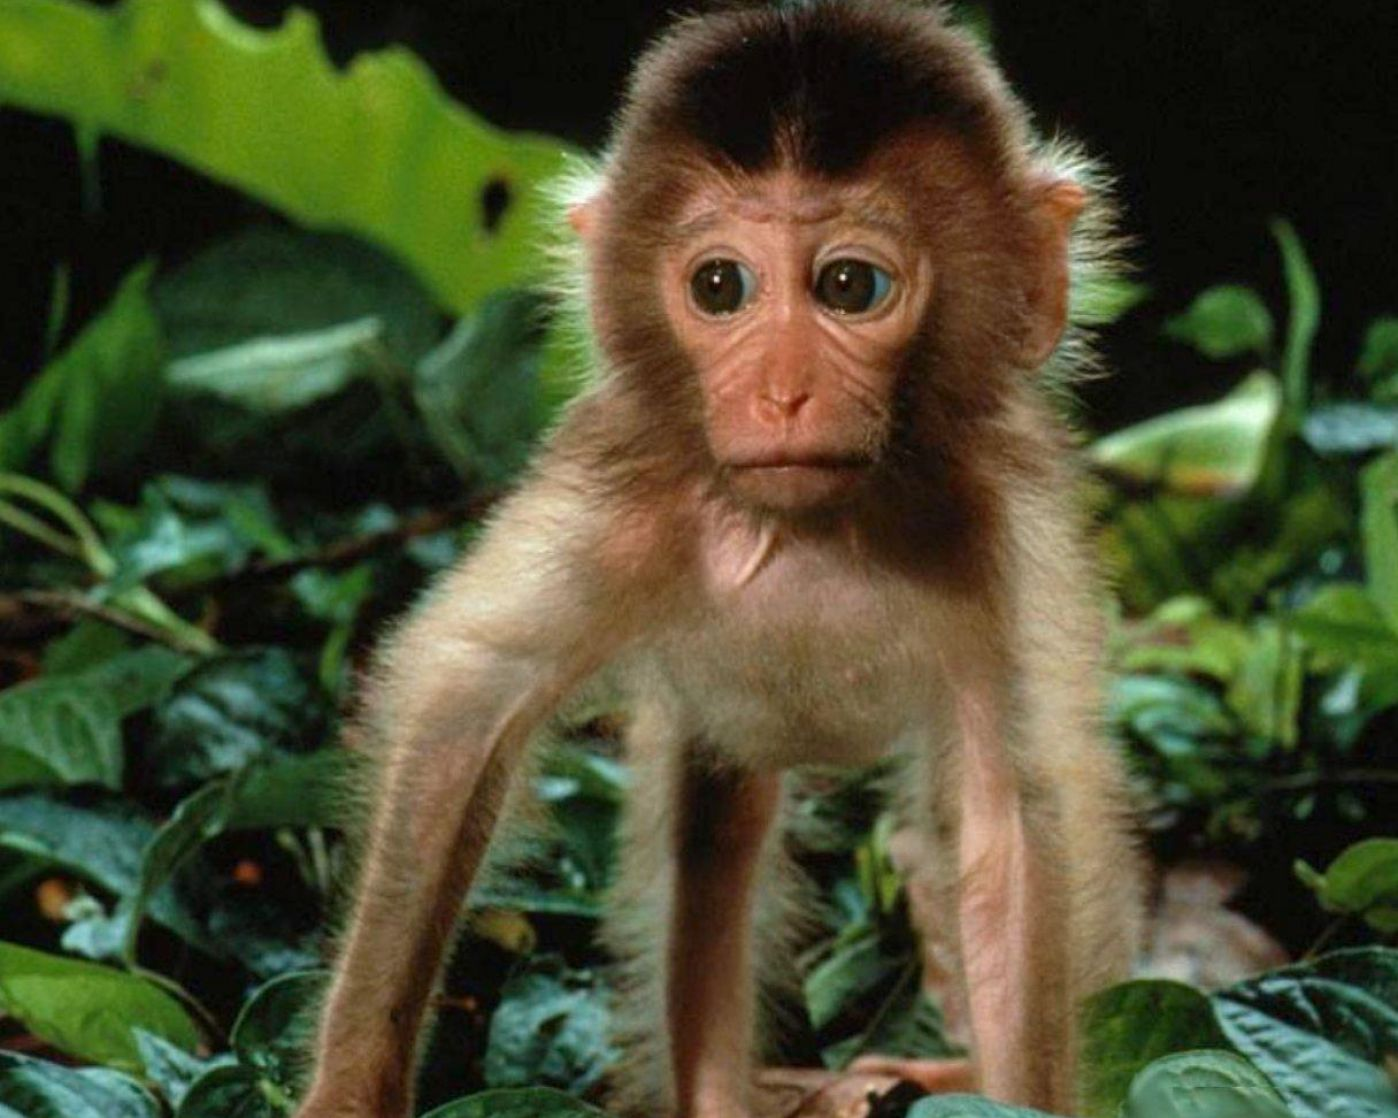 Monkeys usually alternate between upright movement and walking on all ...